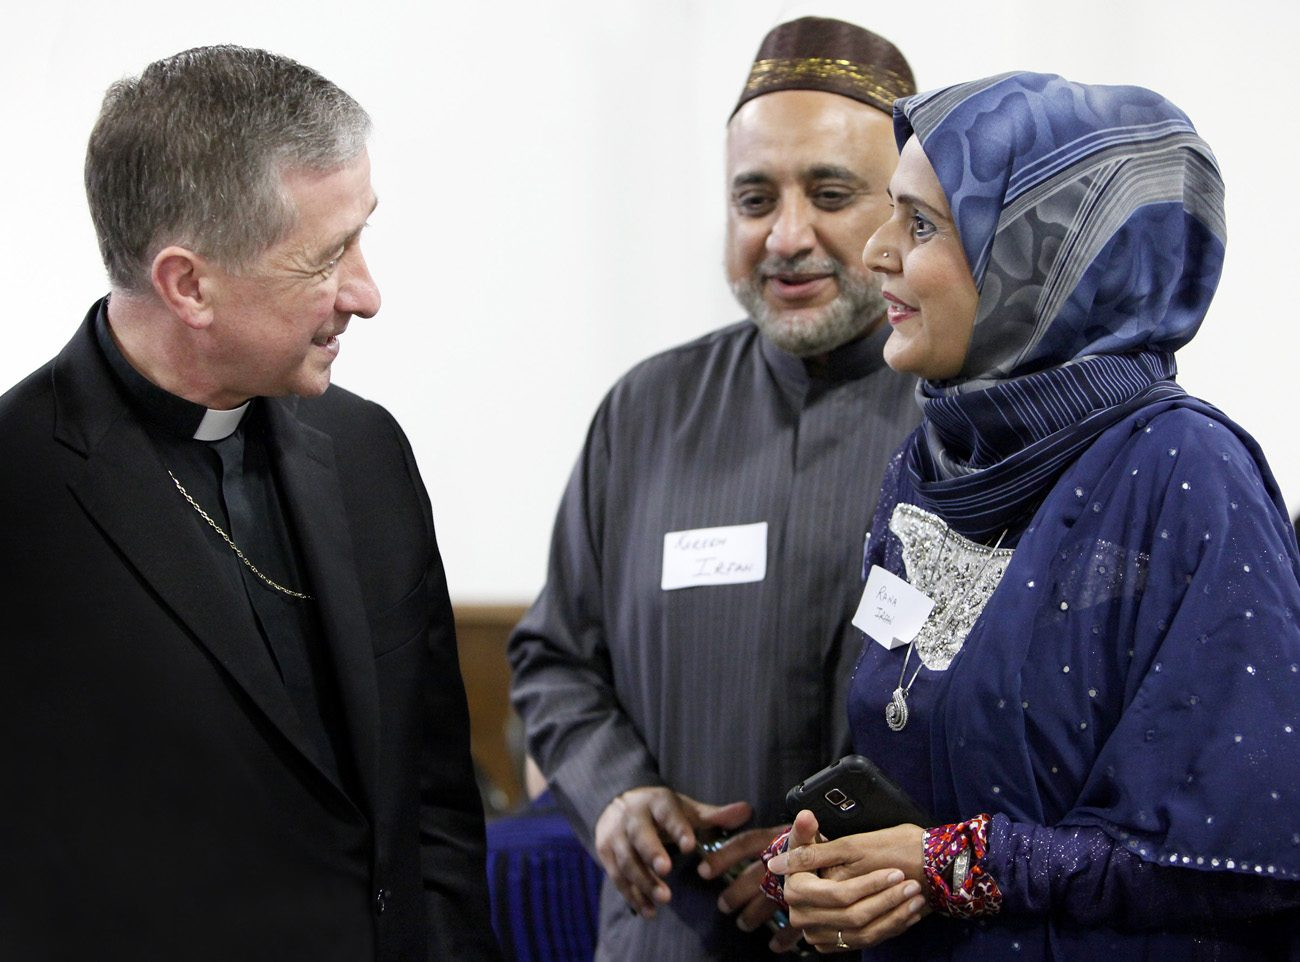 Chicago Archbishop Blase J. Cupich visits with a couple during a June 27 Catholic-Muslim dinner in Bridgeview, Ill. A Georgetown University research group found Catholic perceptions of Islam can tend to be negative or limited. (CNS photo/Karen Callaway/Catholic New World)